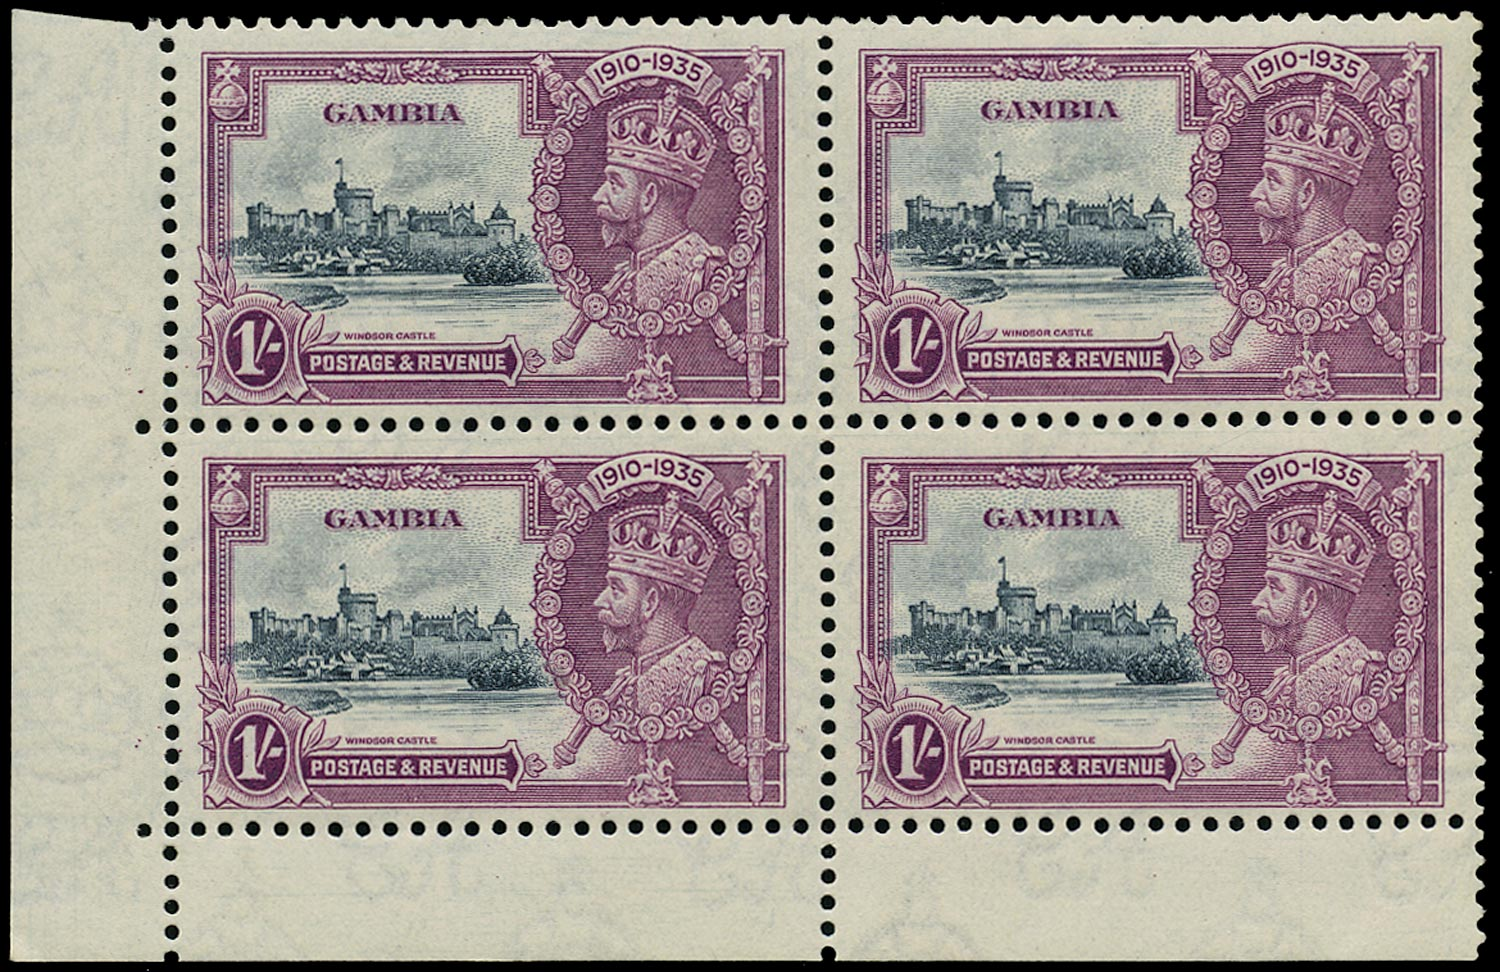 GAMBIA 1935  SG146a var Mint Silver Jubilee 1s variety Extra flagstaff partially erased